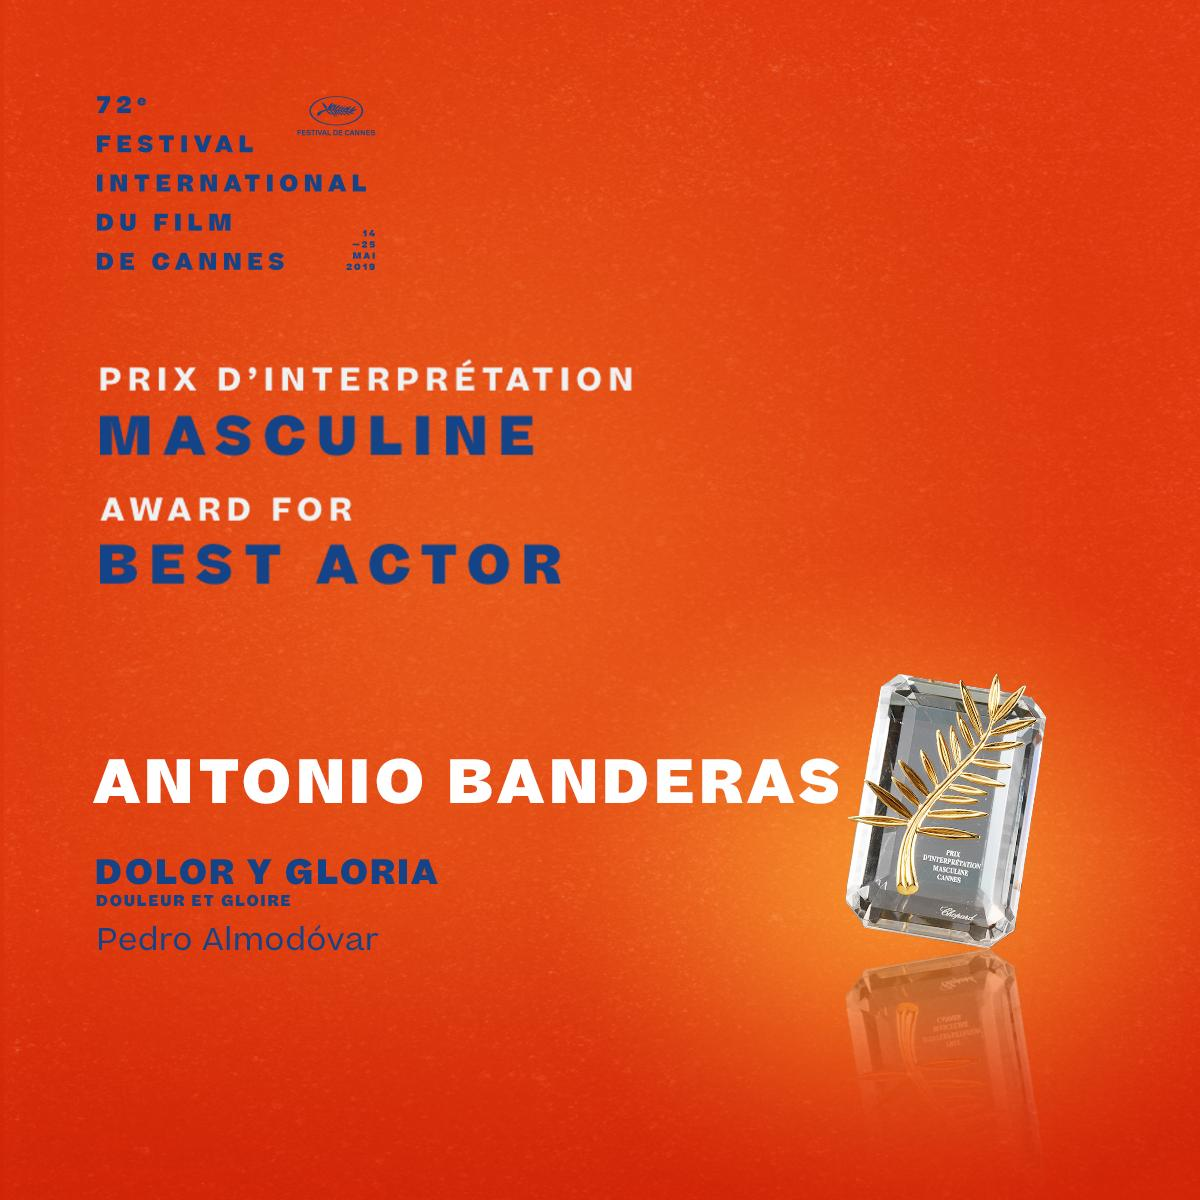 The Award for Best Actor goes to… Antonio Banderas in #DolorYGloria by Pedro Almodóvar  #Cannes2019 #Awards https://t.co/ZB5KQLUz1v